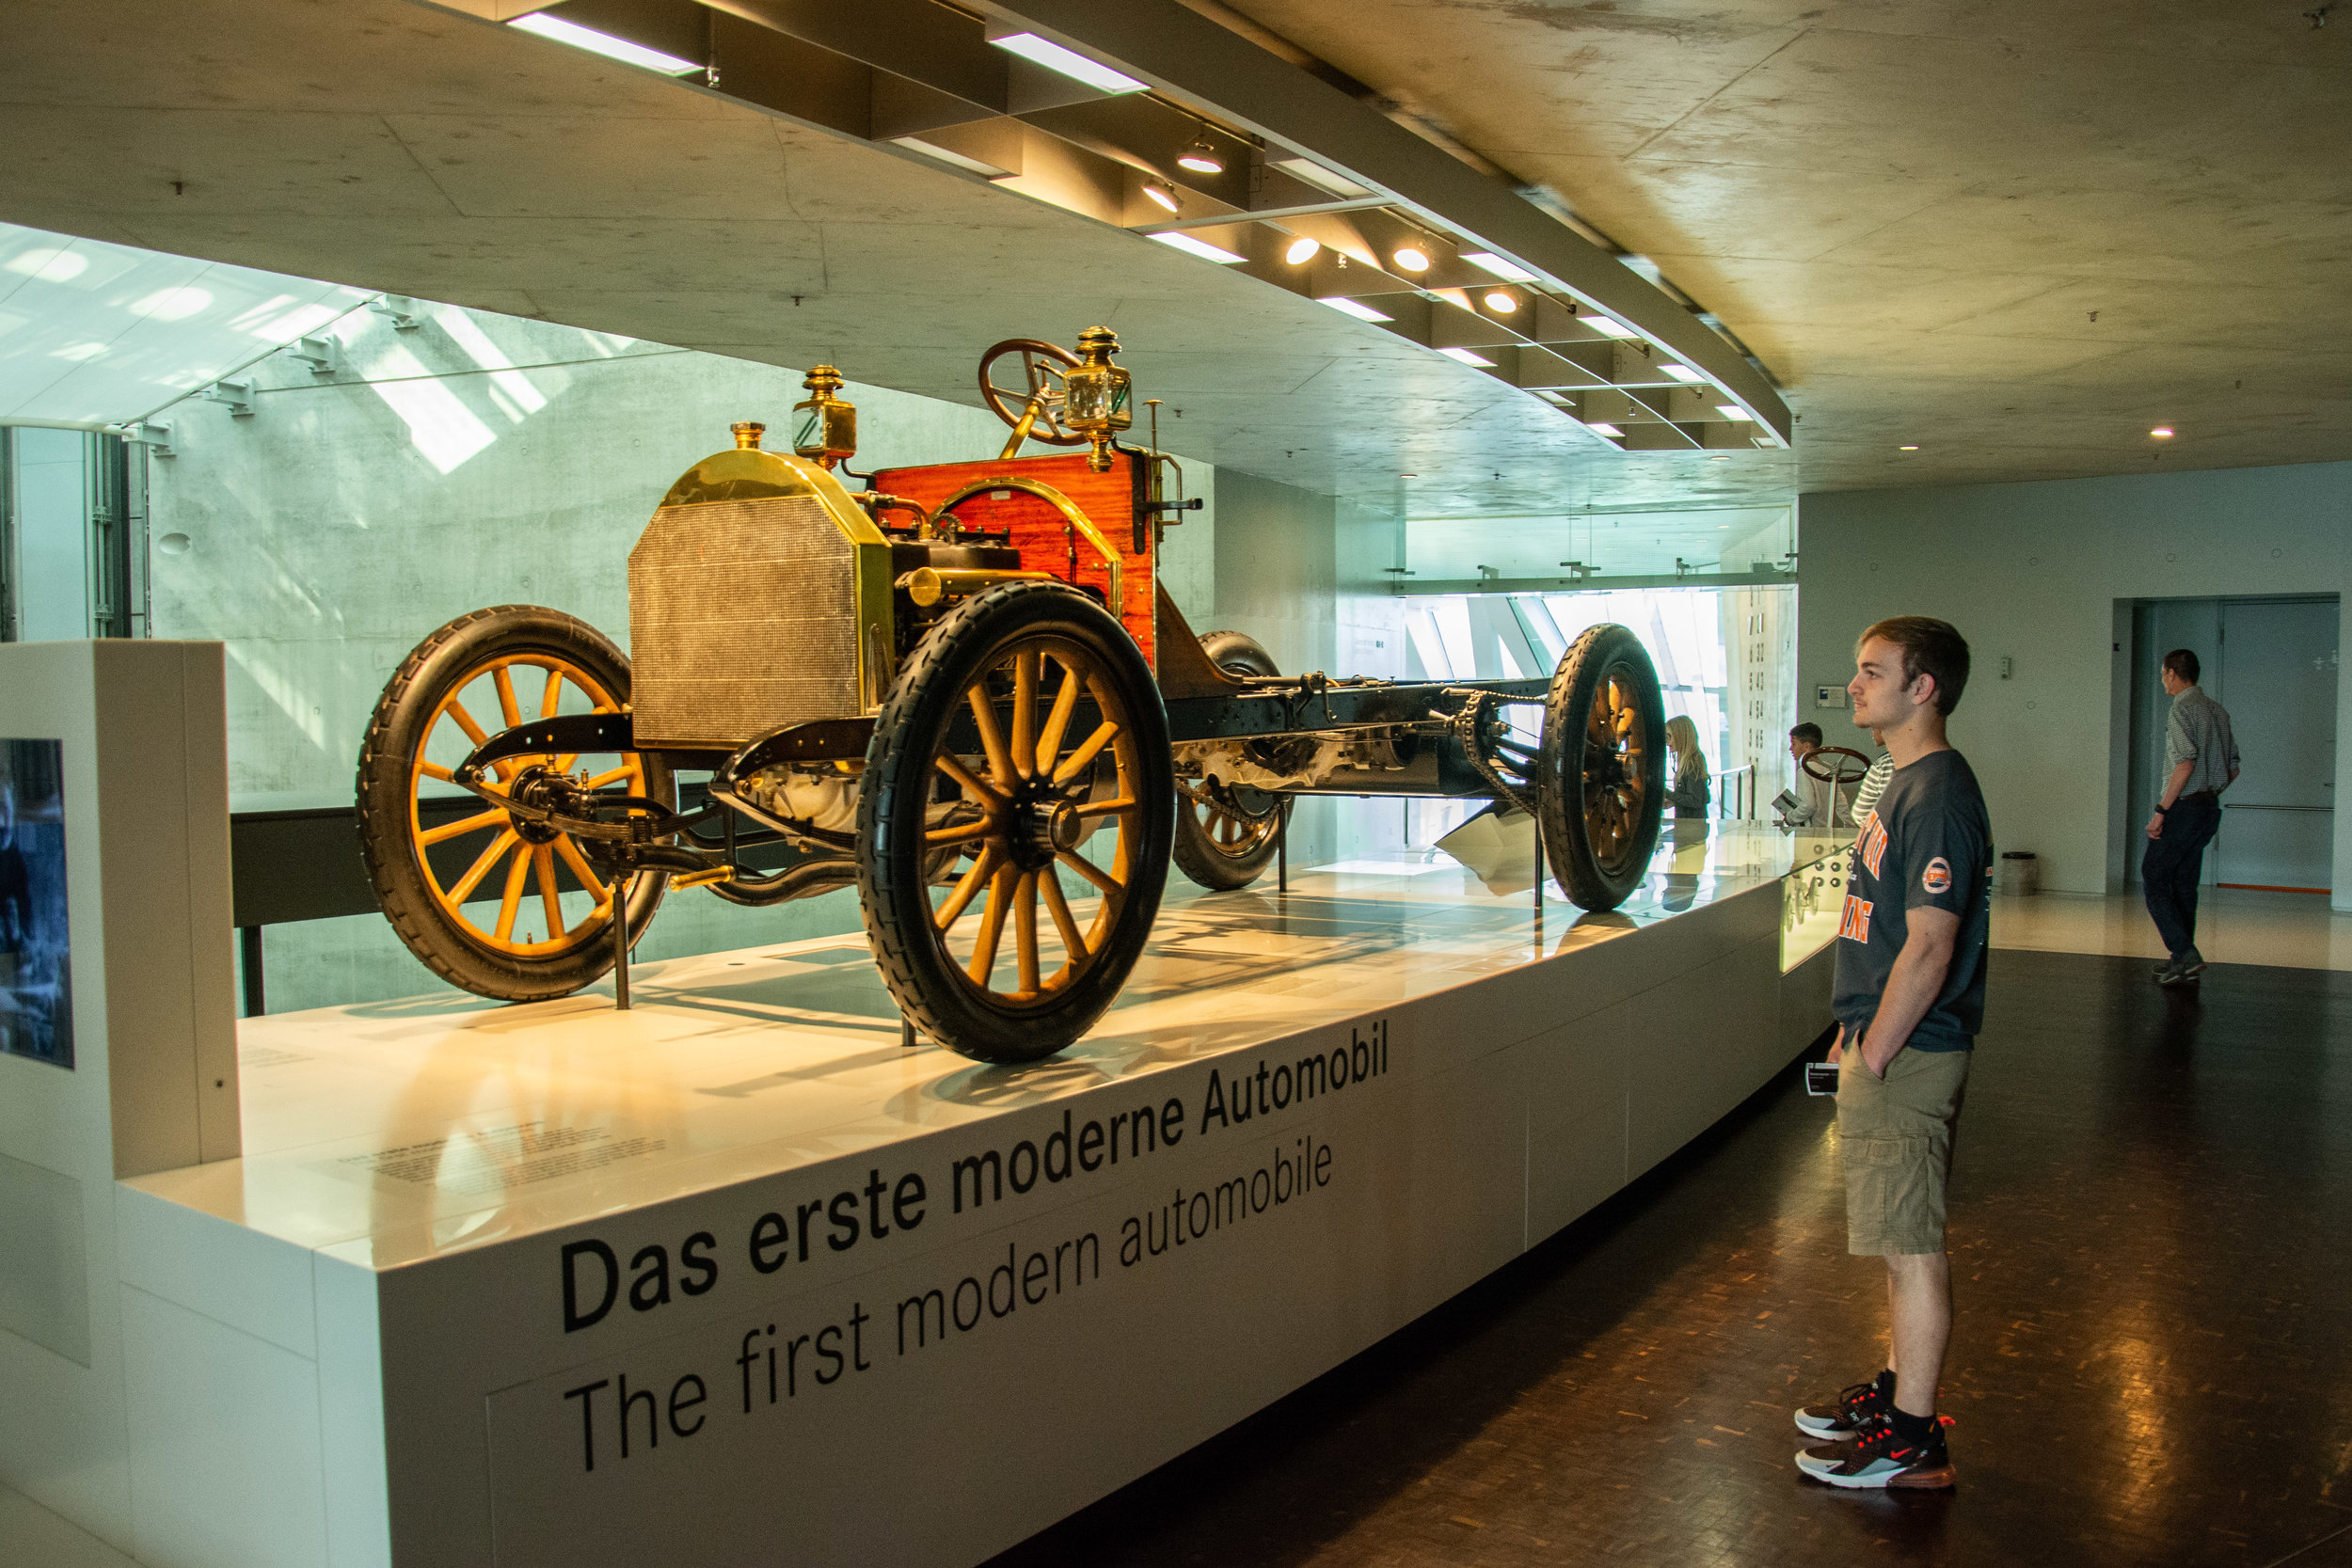 The First Modern Automobile